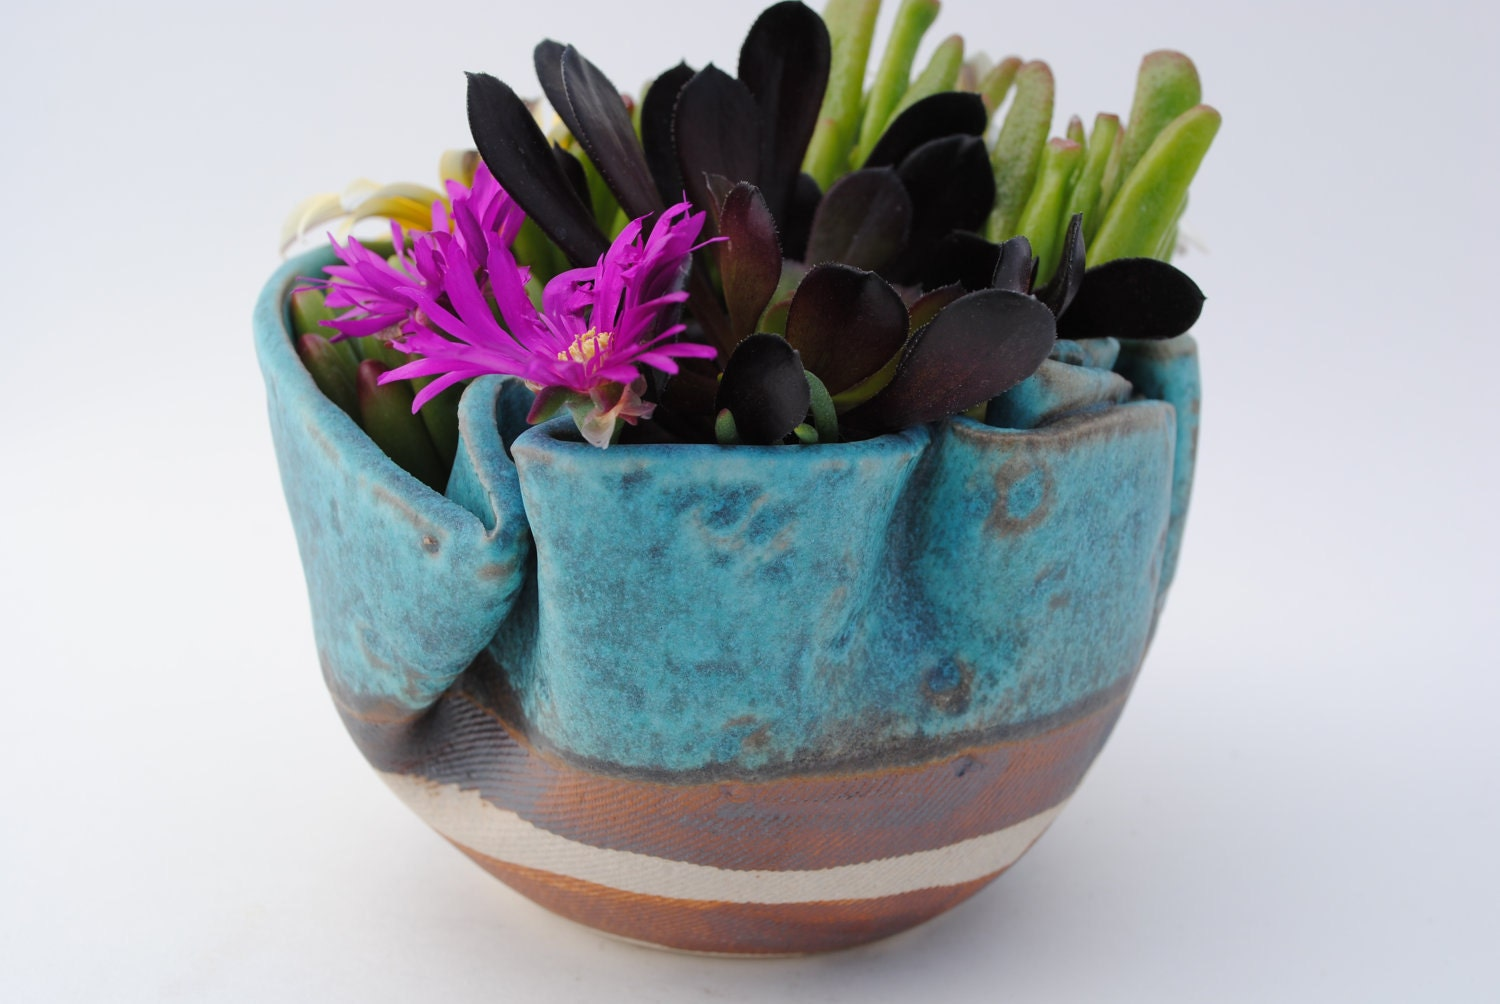 Garden Planter Bowl Ceramic Plant Pot Meditation Vessel Clay